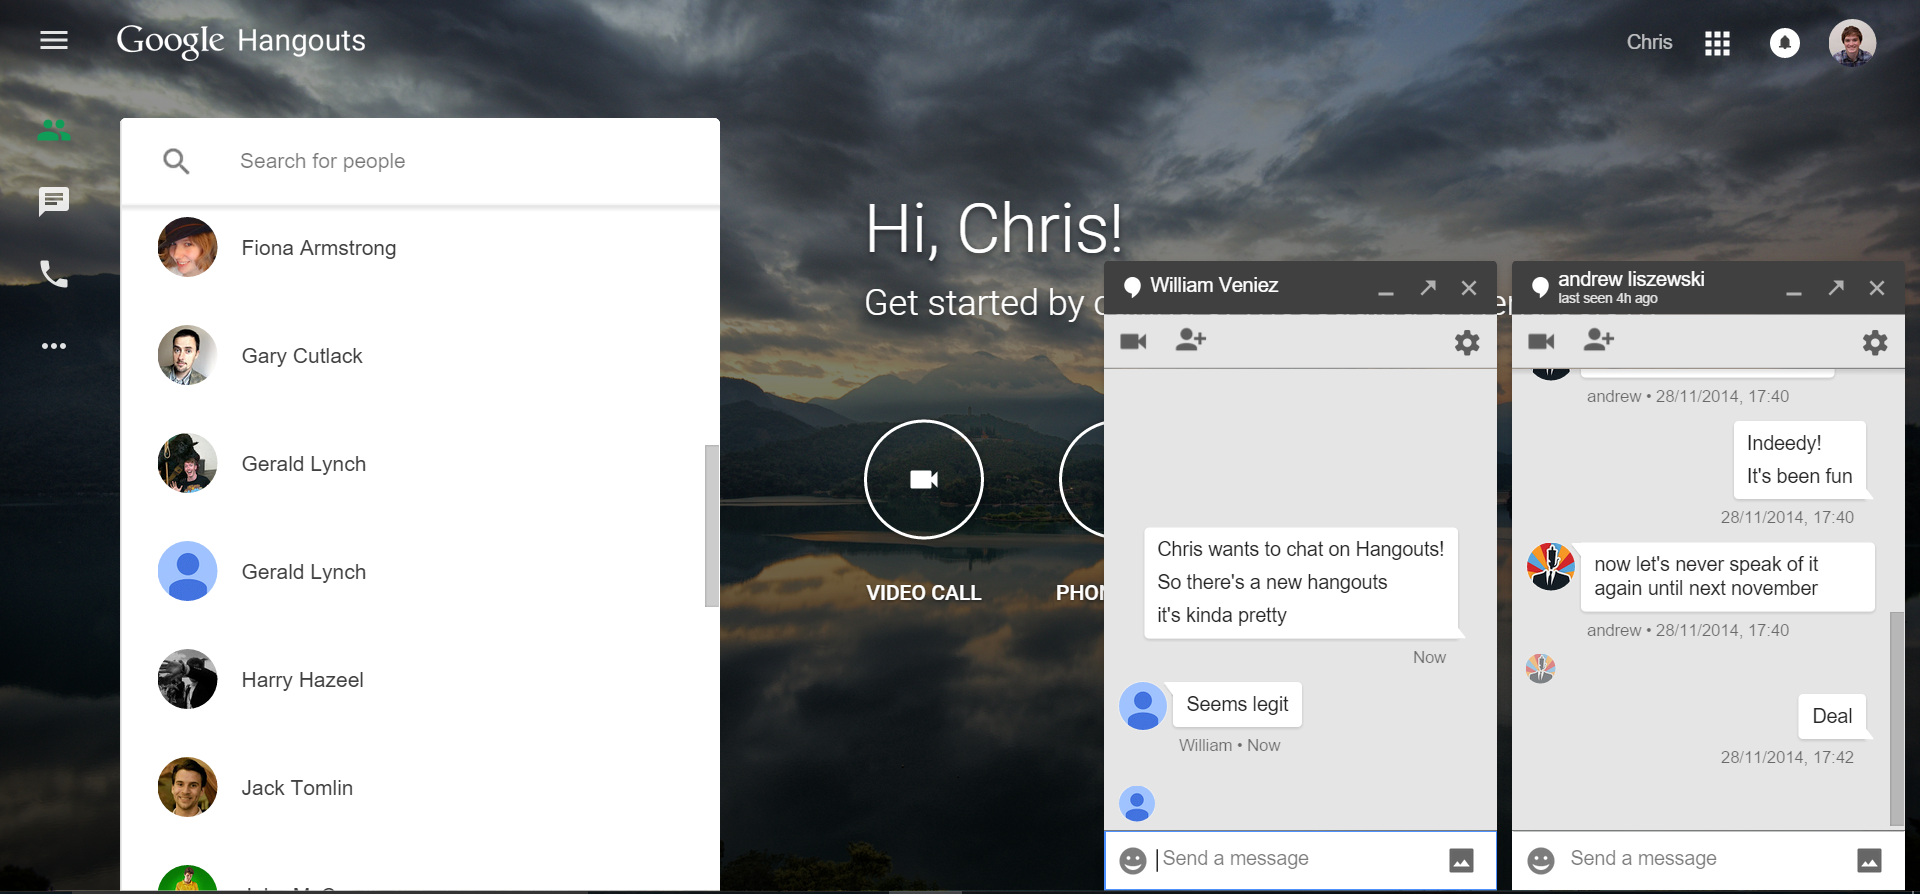 Google Hangouts Has A Gorgeous New Home On The Web